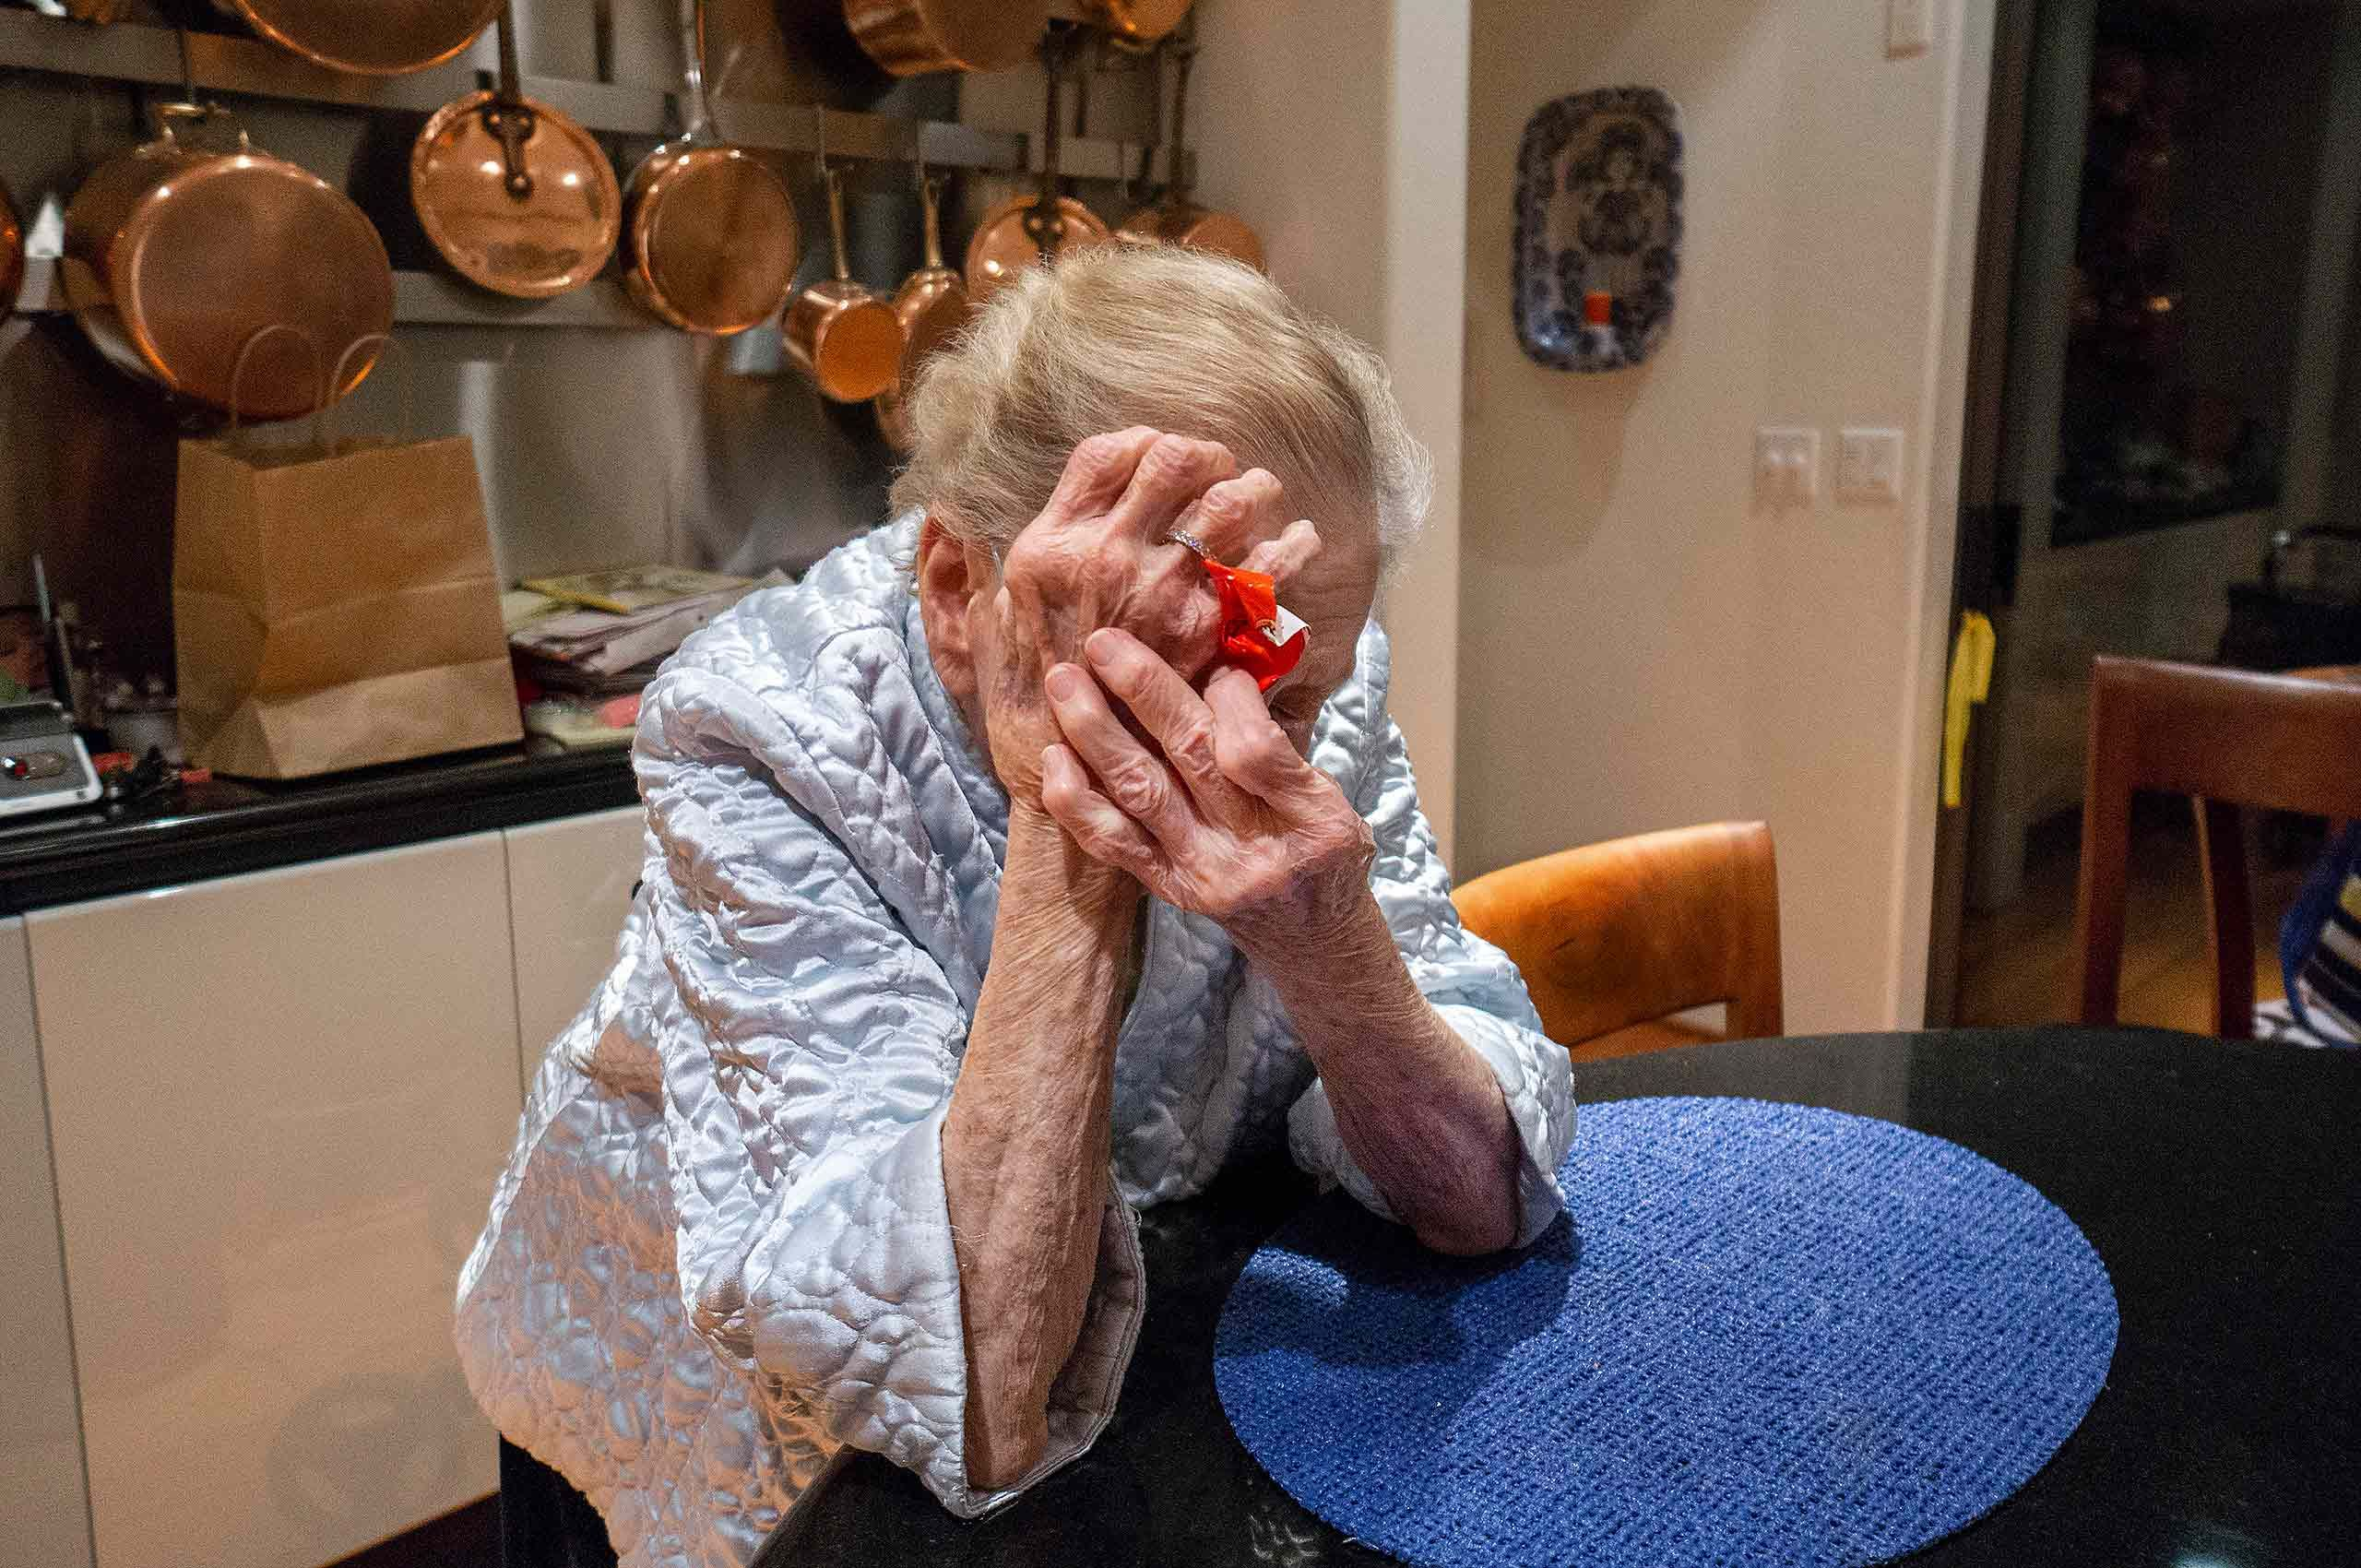 elderly woman hiding from camera copper pots lkitchen